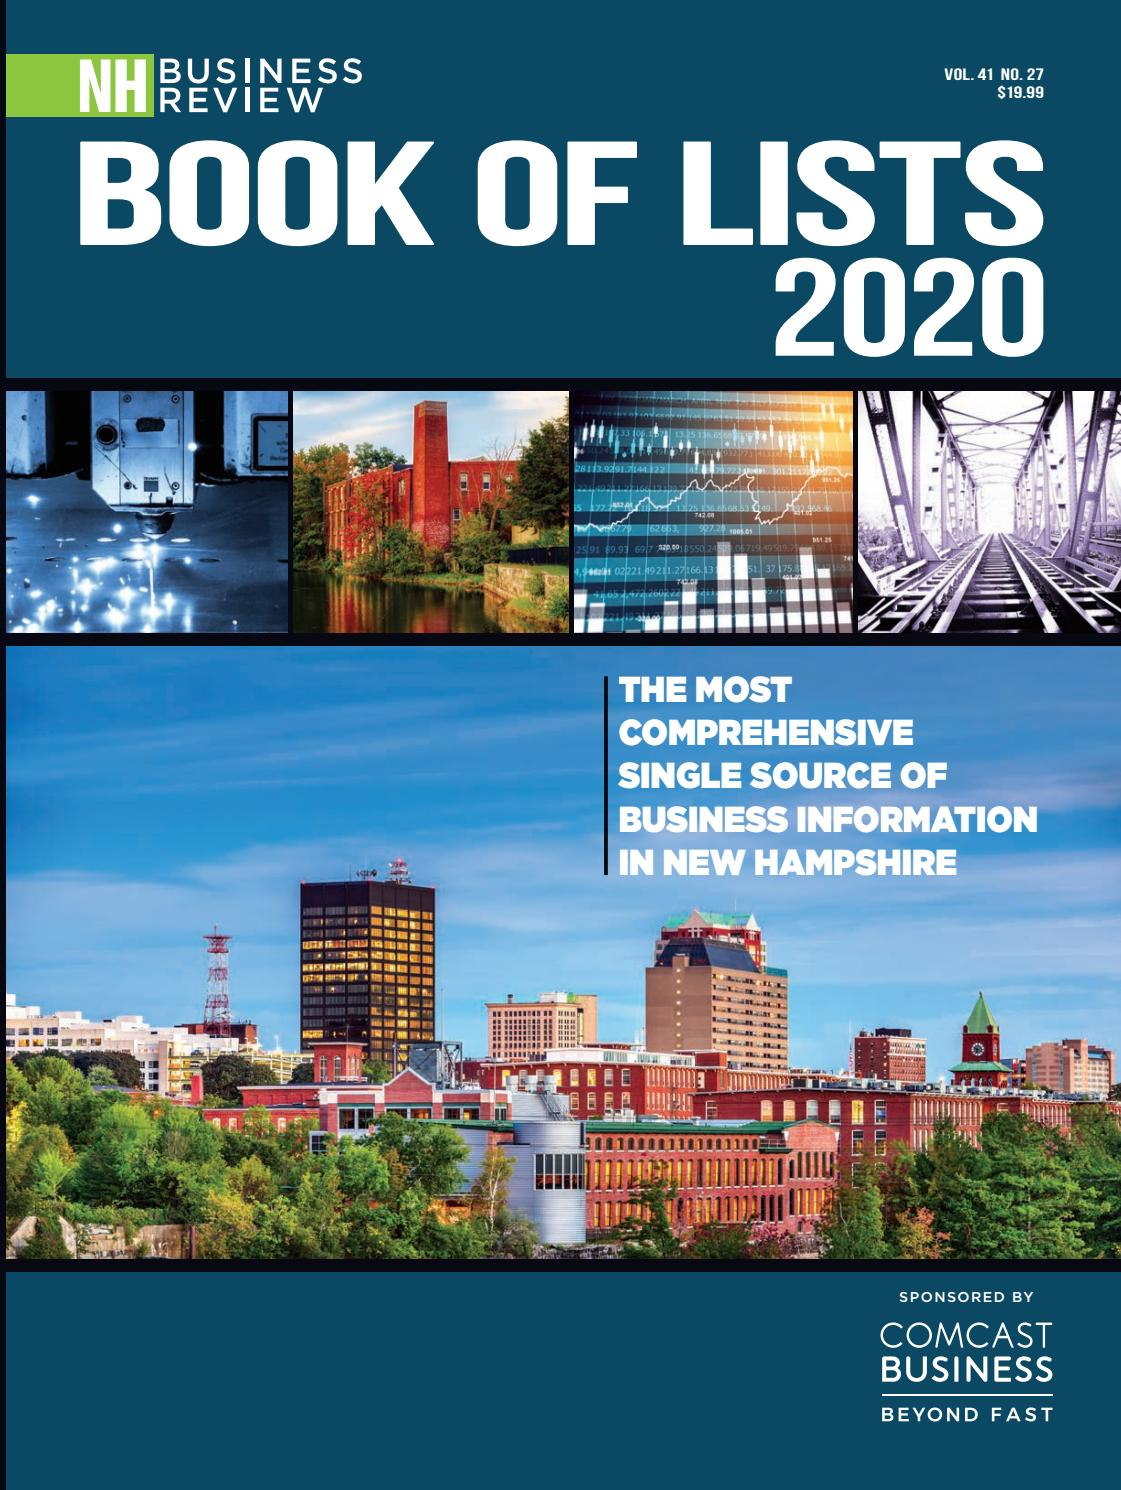 2020 Book Of Lists By Nh Business Review By Mclean Communications Issuu